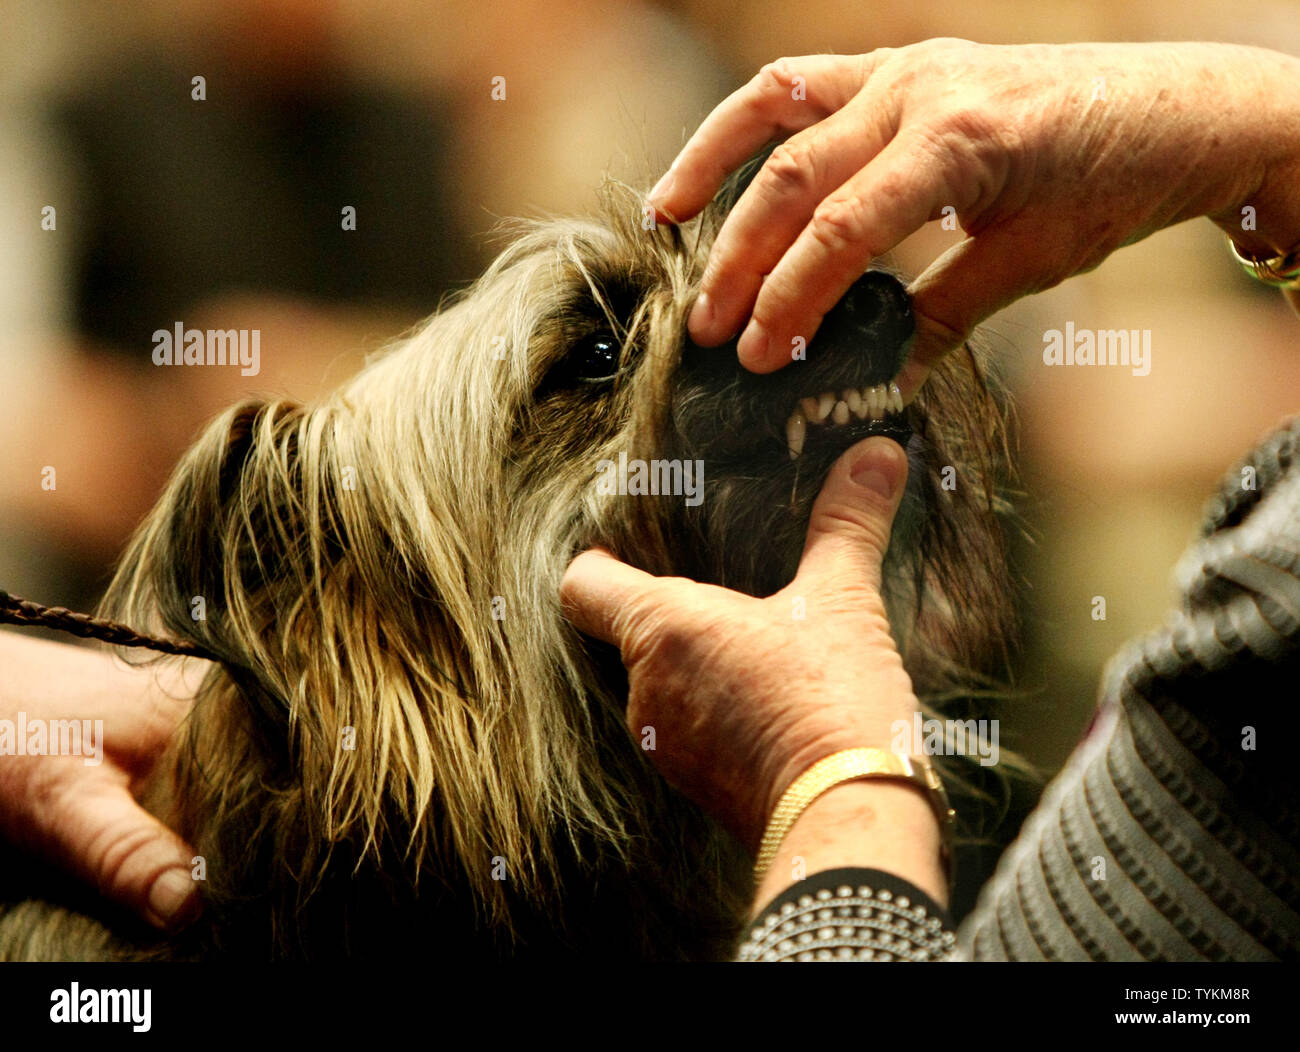 A judge inspects the teeth of a Pyrenean Shepherd as the breed is shown for the first time at the Westminster Kennel Club Dog Show held at Madison Square Garden on February 15, 2010 in New York City.  The annual dog show, which was first held in 1877, features competition among 150 breeds and 2,500 dogs.     UPI /Monika Graff - Stock Image